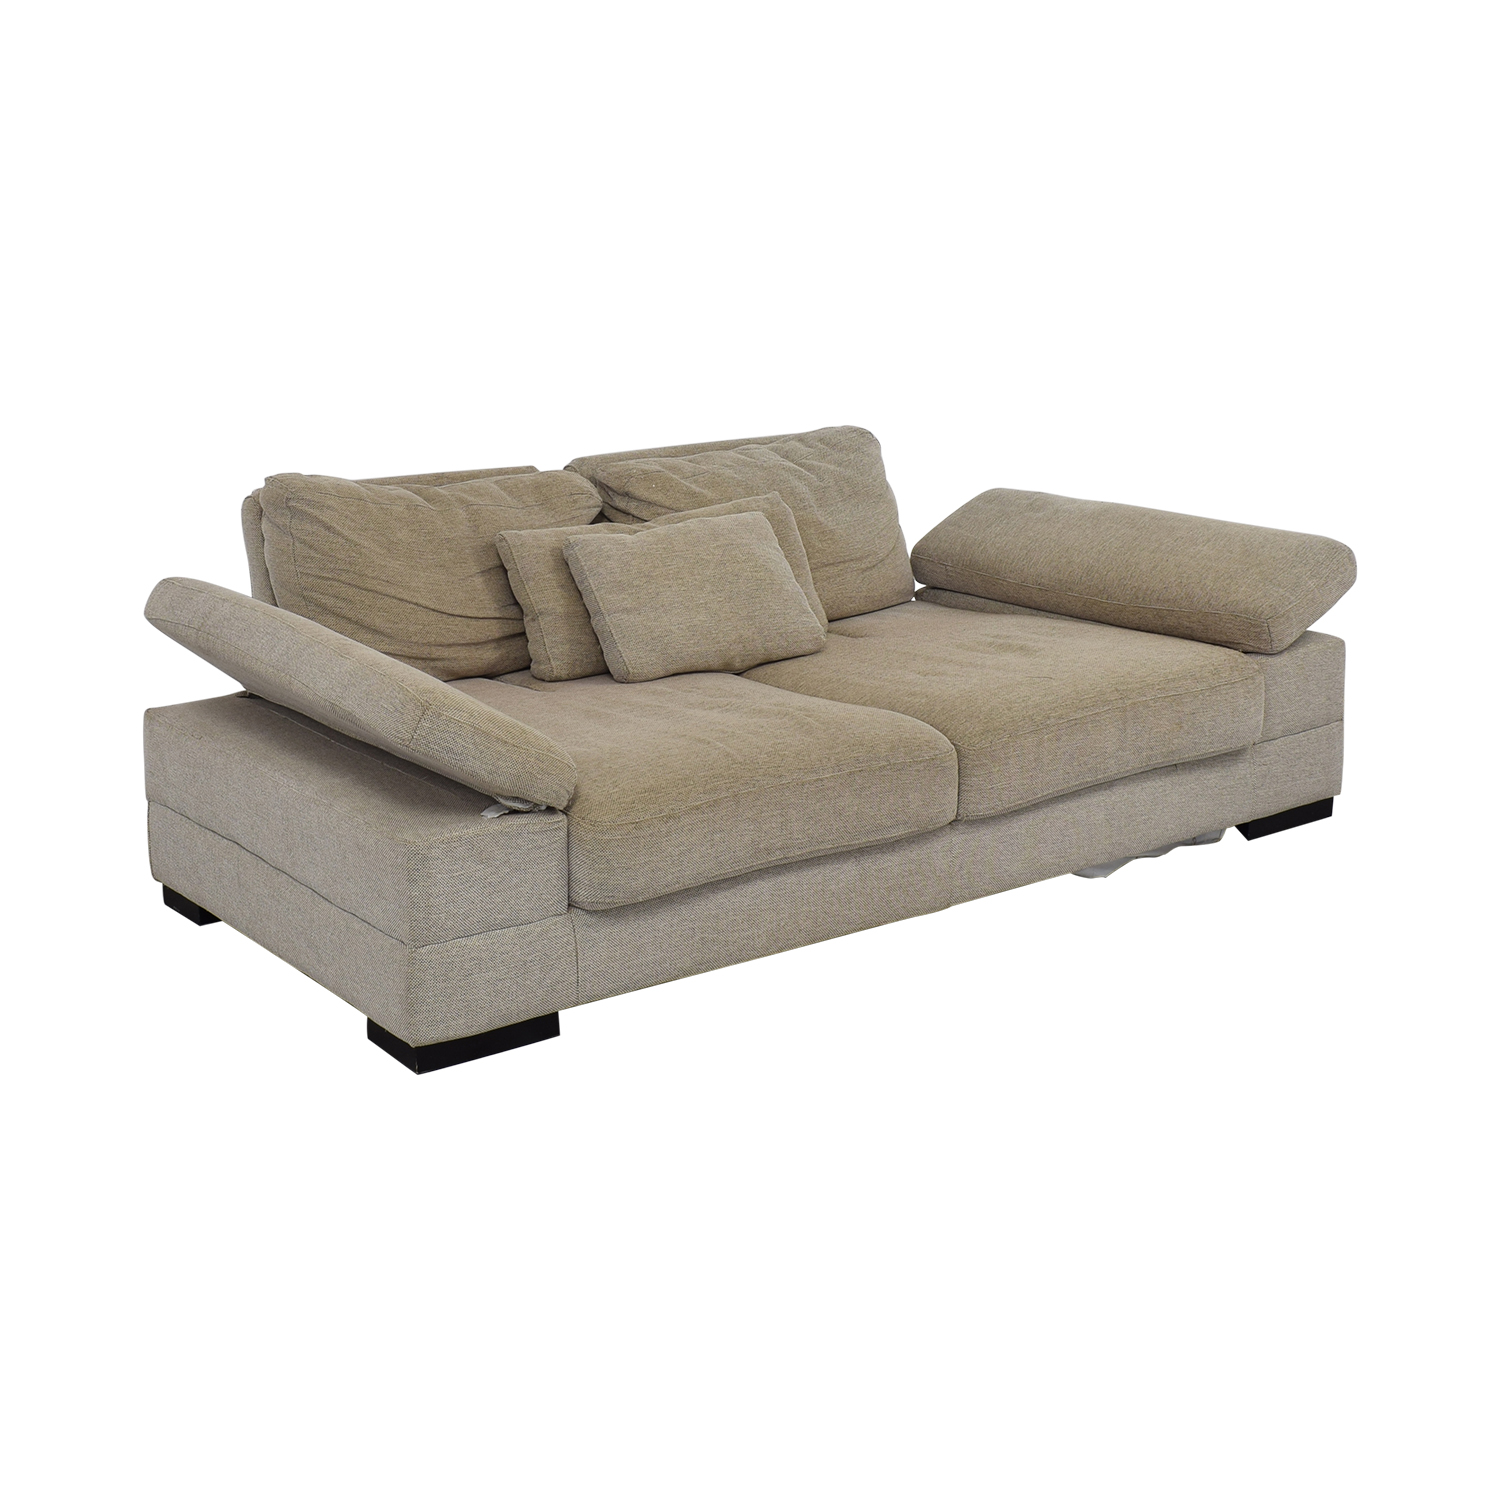 77% OFF - Lazzoni Lazzoni Kema Sectional Sofa Bed / Sofas